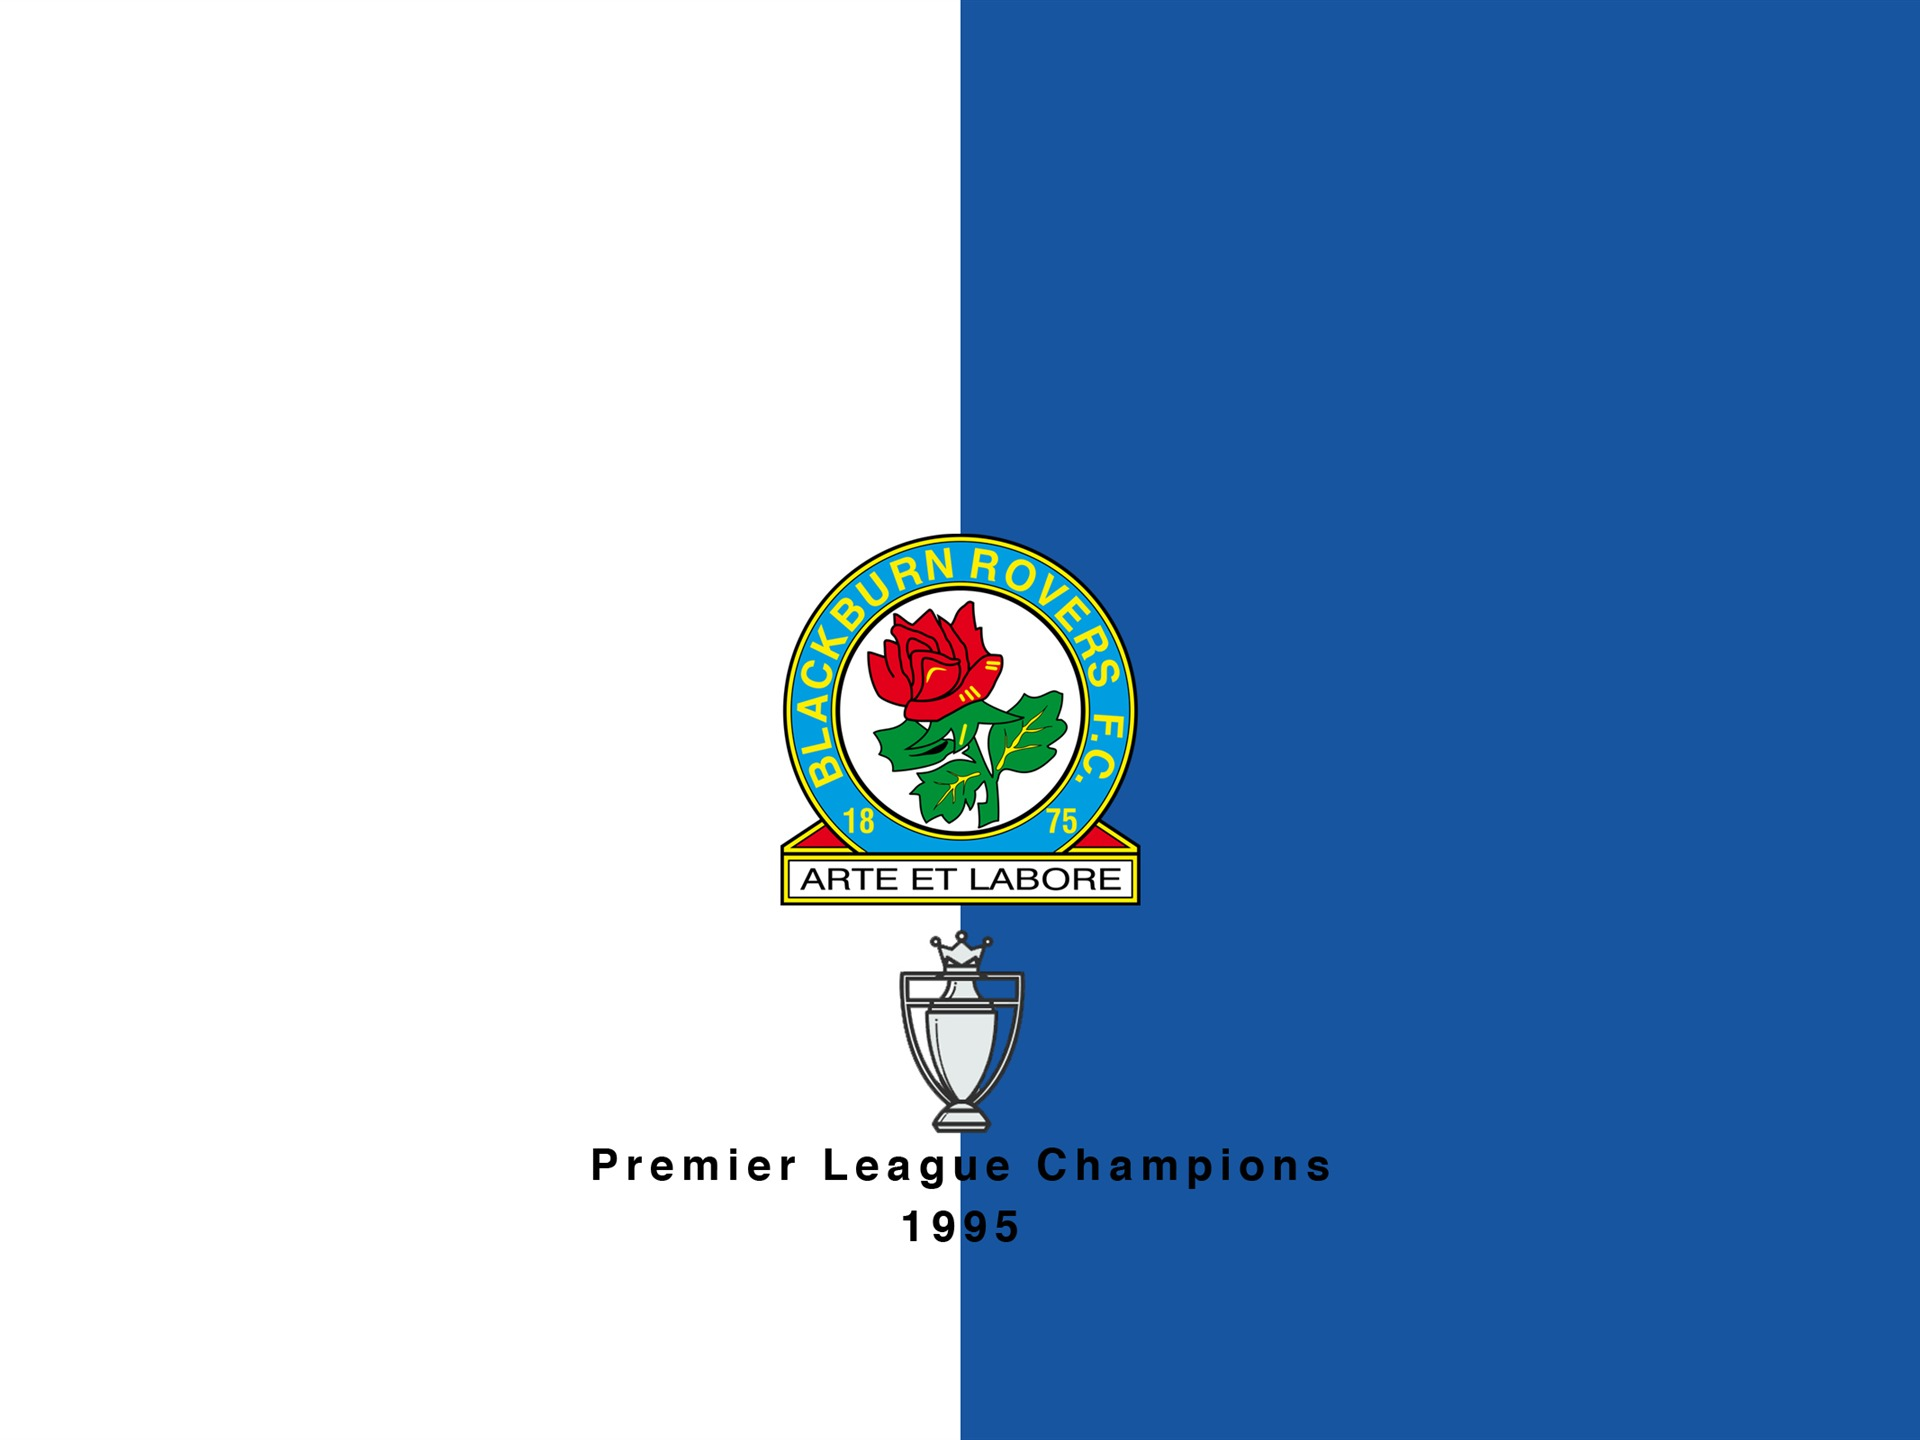 Blackburn Rovers Champions-European Football Club HD